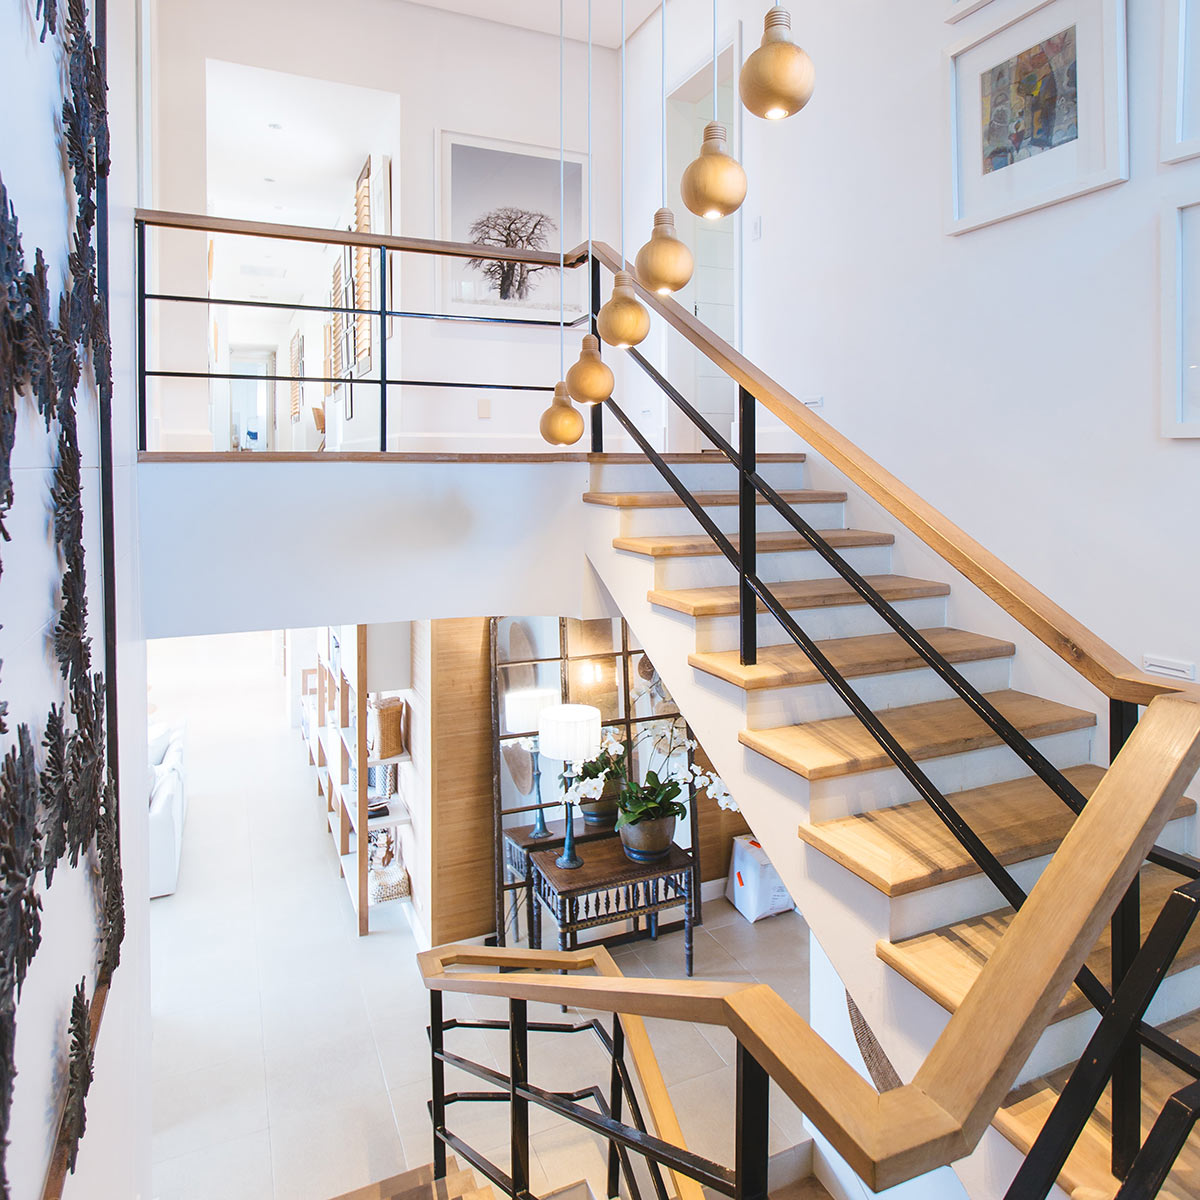 Property stairs